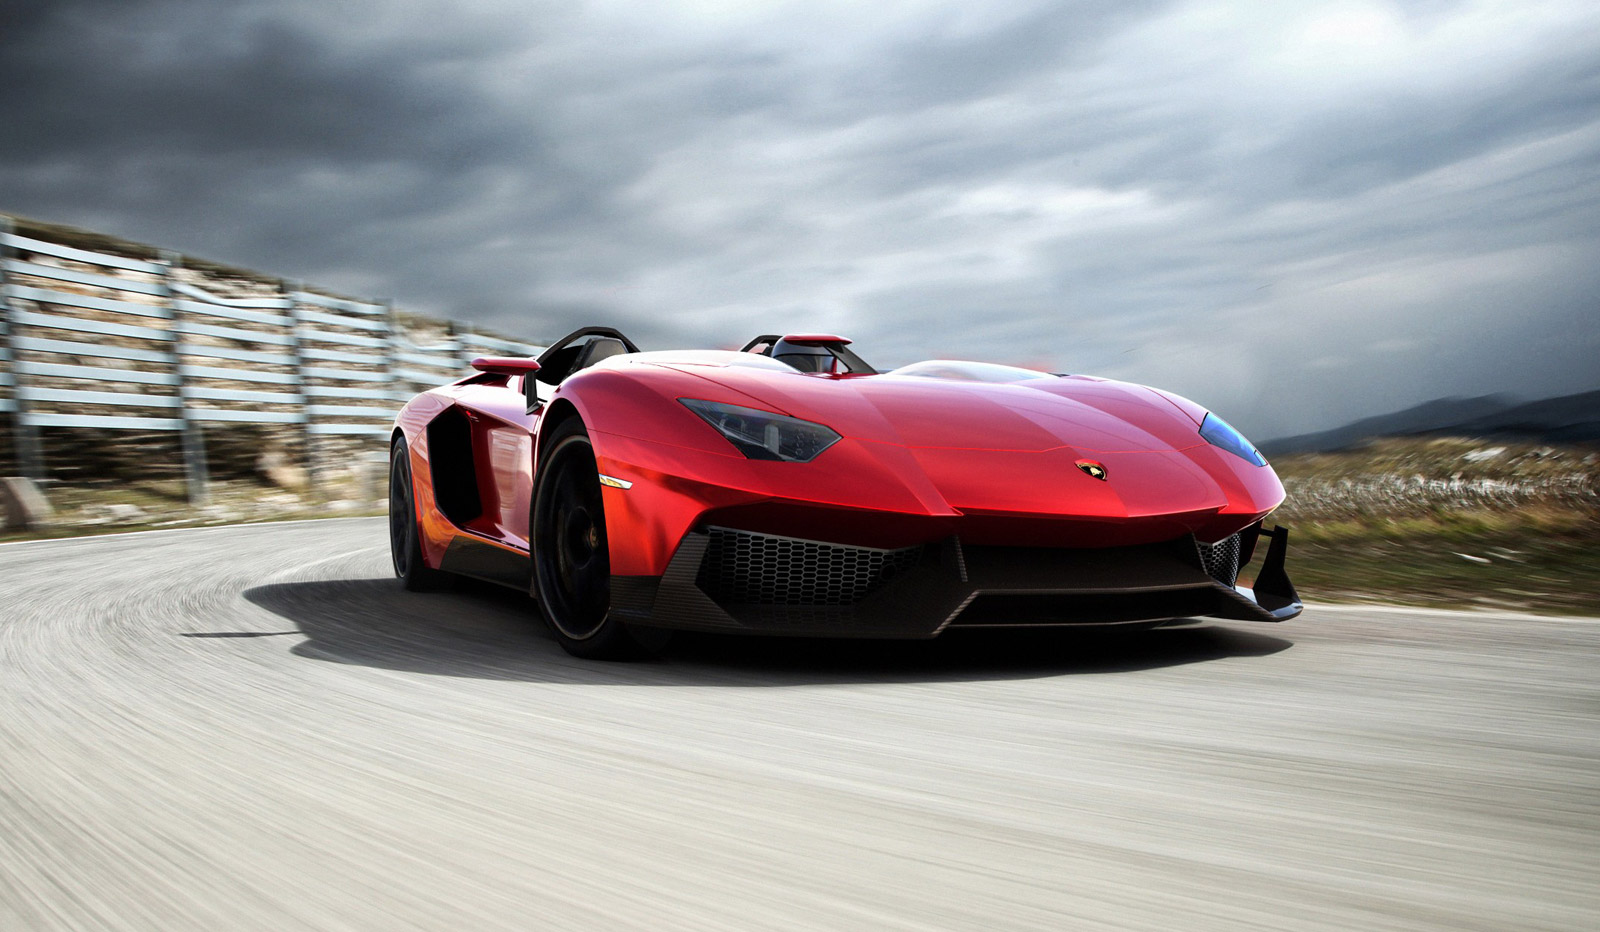 Lamborghini Aventador J Runs The Mountain Video